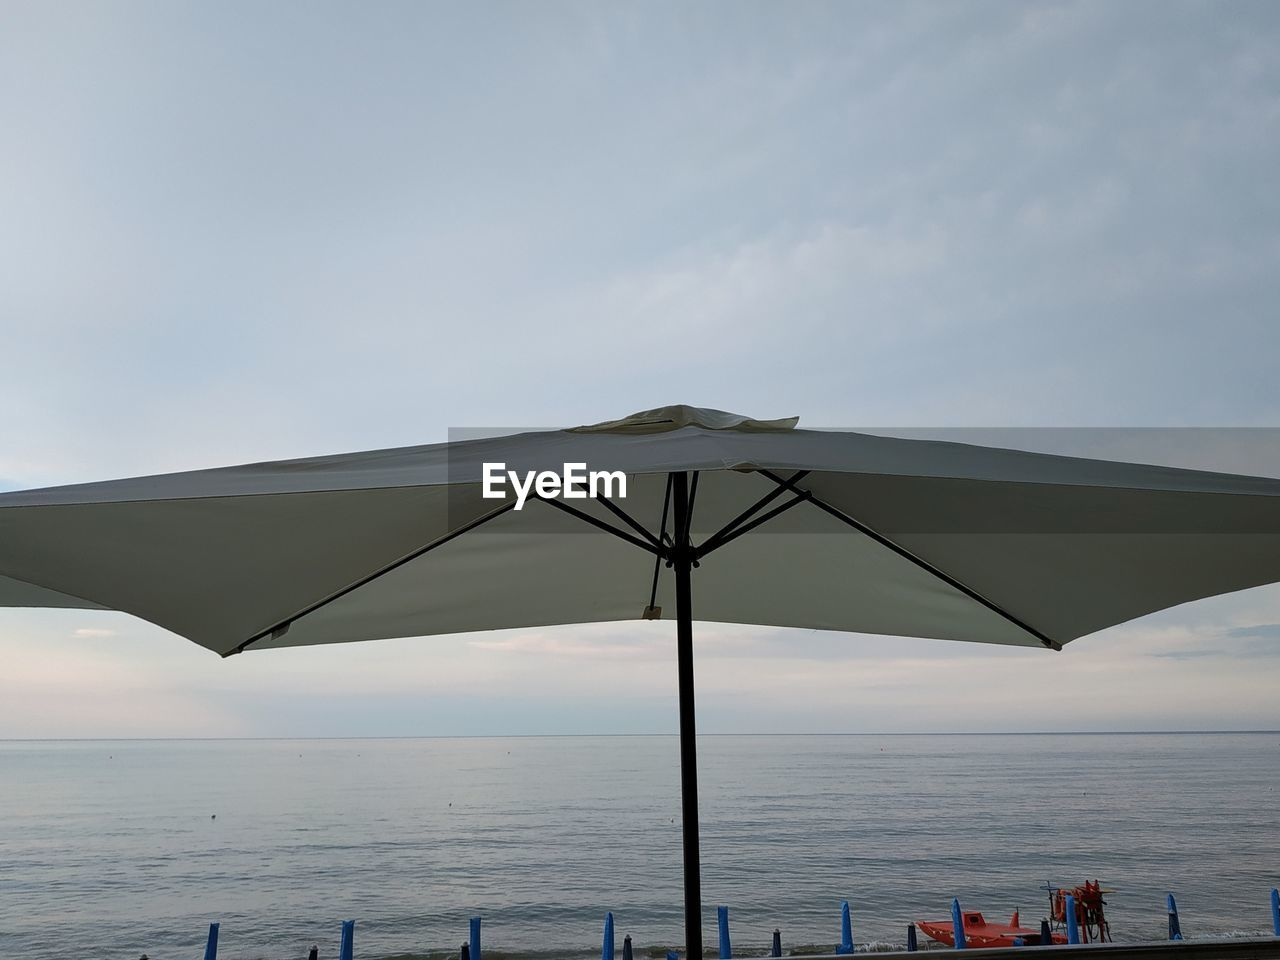 sky, water, sea, horizon over water, horizon, umbrella, beauty in nature, protection, nature, scenics - nature, parasol, beach, cloud - sky, day, beach umbrella, outdoors, security, shade, tranquility, no people